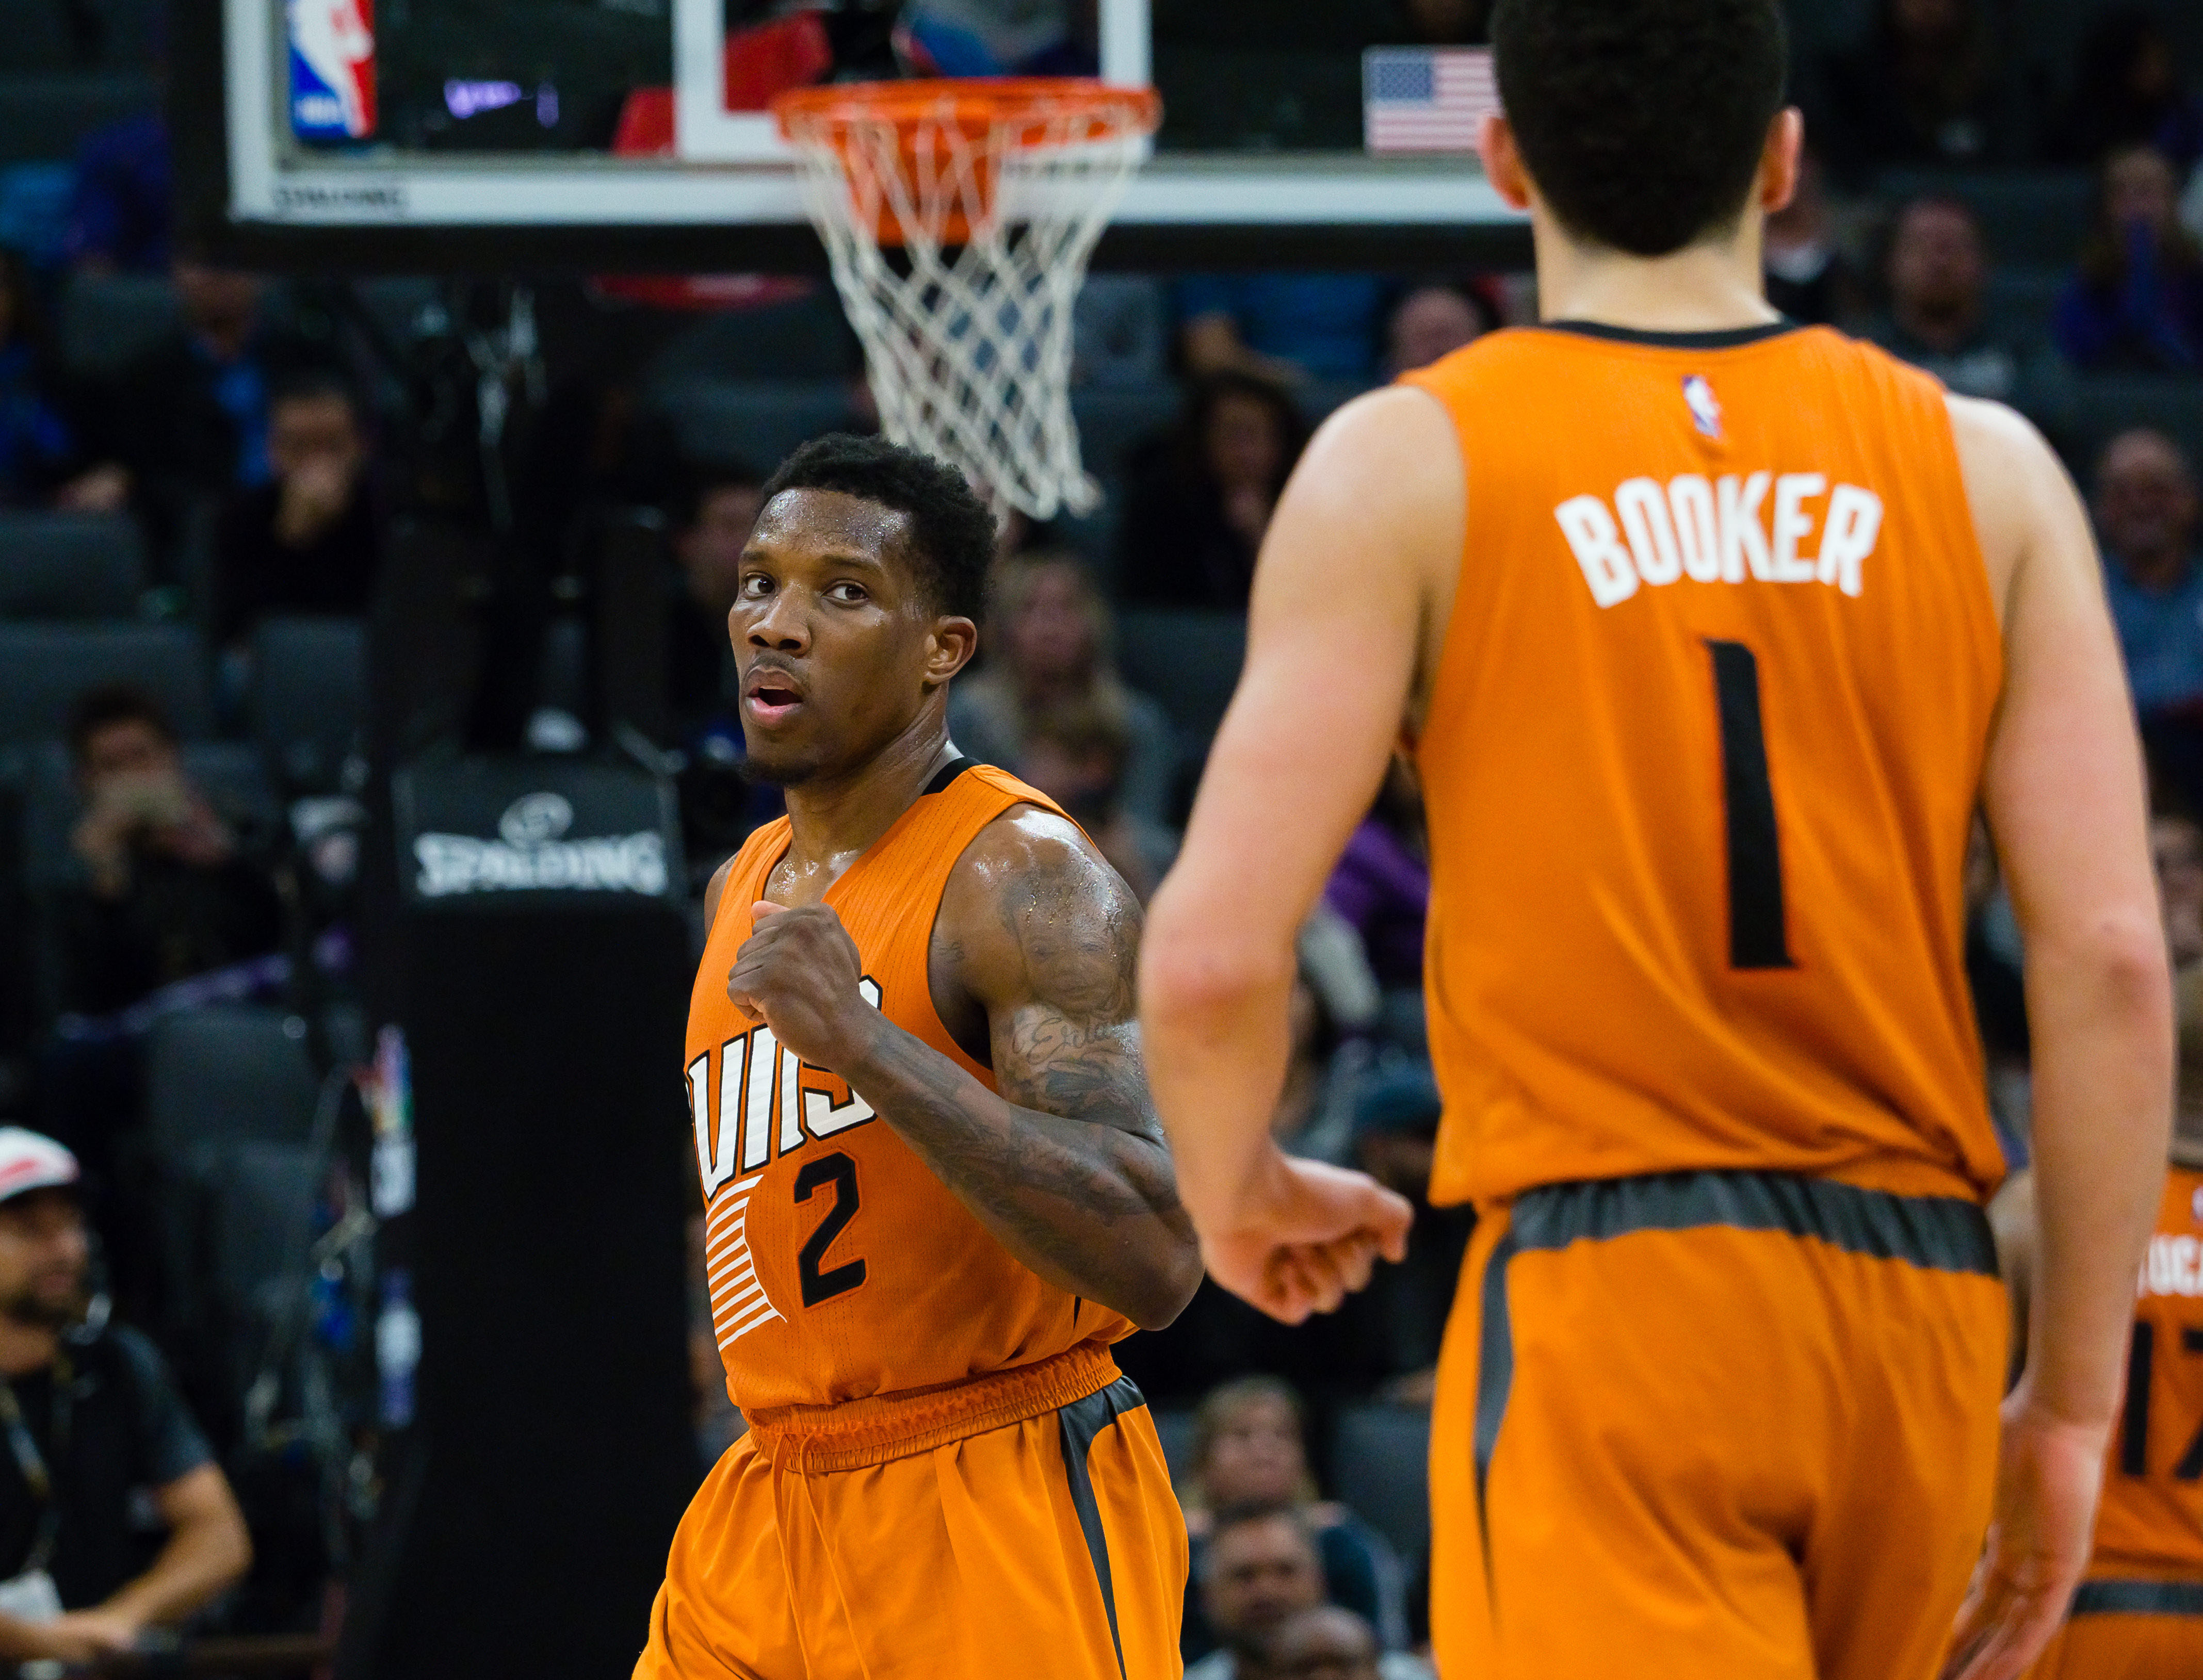 Feb 3, 2017; Sacramento, CA, USA; Phoenix Suns guard Eric Bledsoe (2) celebrates towards guard Devin Booker (1) after a play against the Sacramento Kings during the fourth quarter at Golden 1 Center. The Phoenix Suns defeated the Sacramento Kings 105-103. Mandatory Credit: Kelley L Cox-USA TODAY Sports